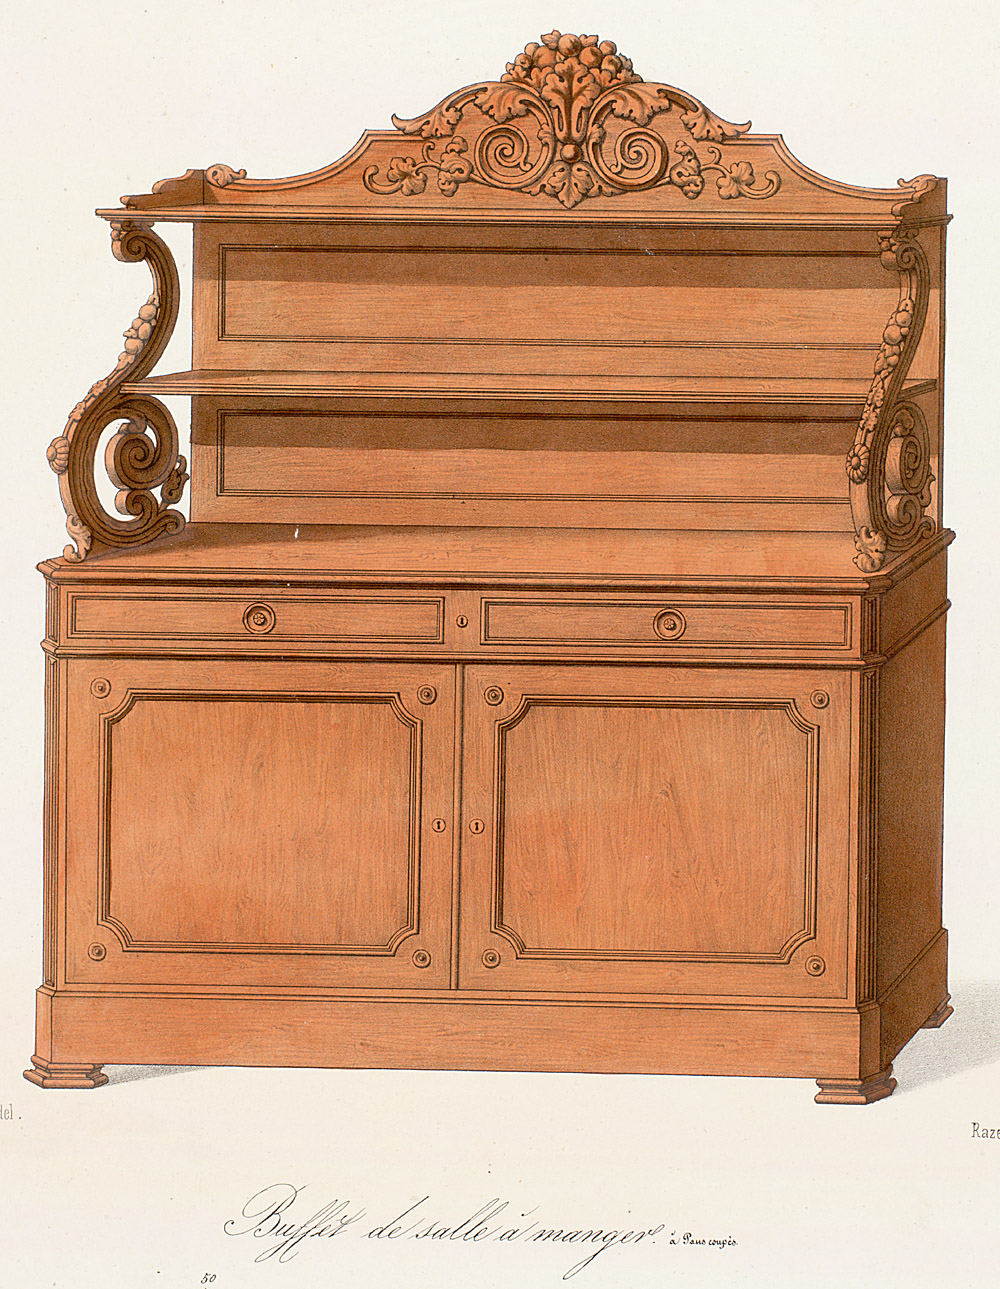 Cabinets (case furniture),  Image number:SIL12-2-320b